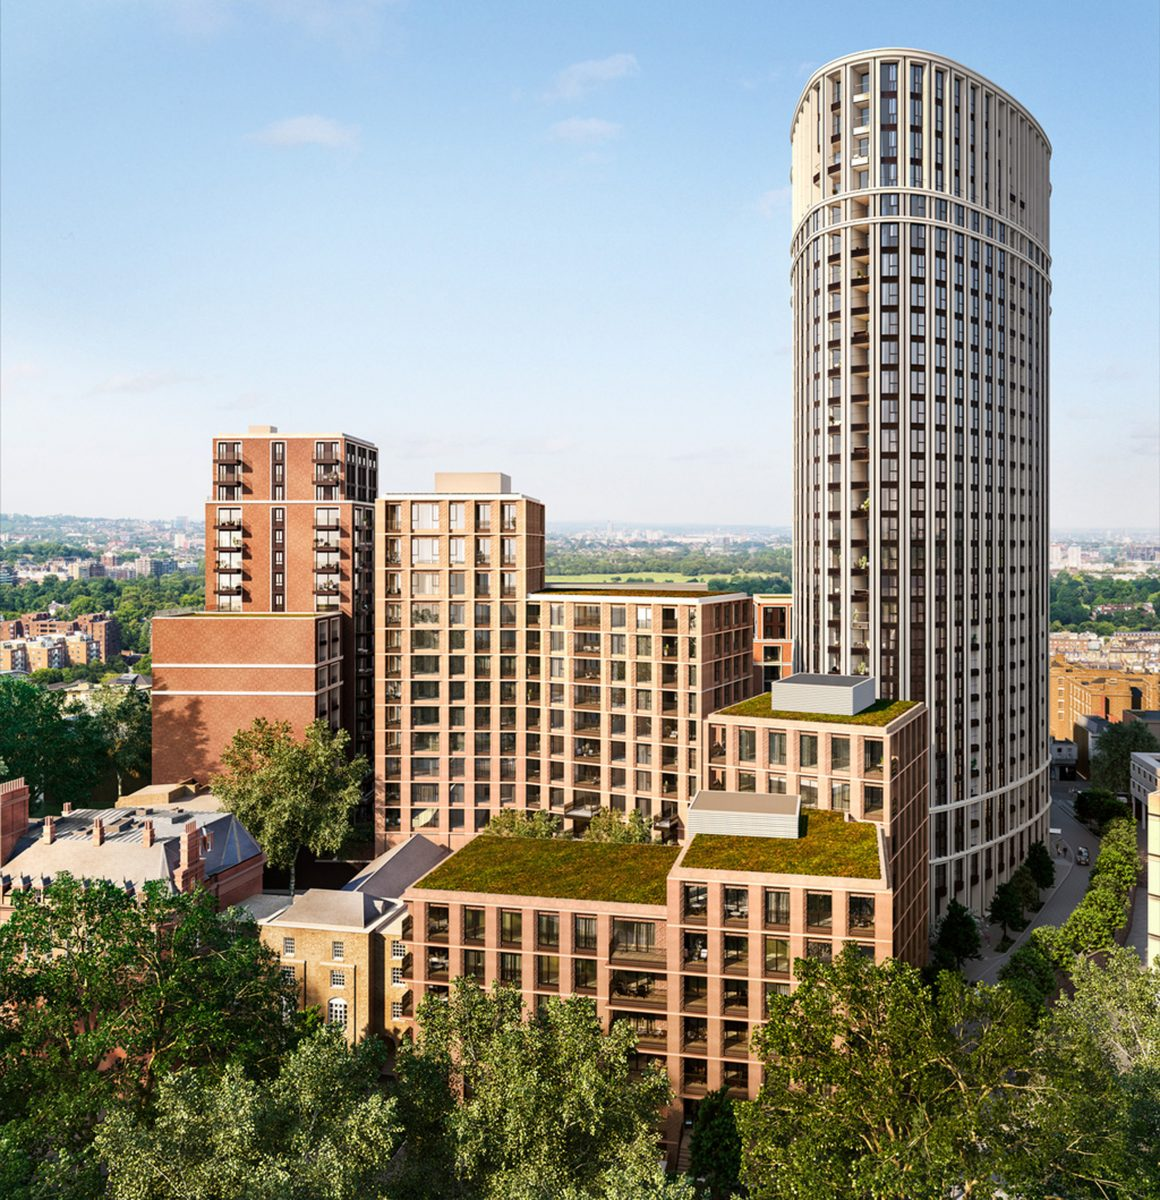 paddington green london residential apartments architecture jersey architects19